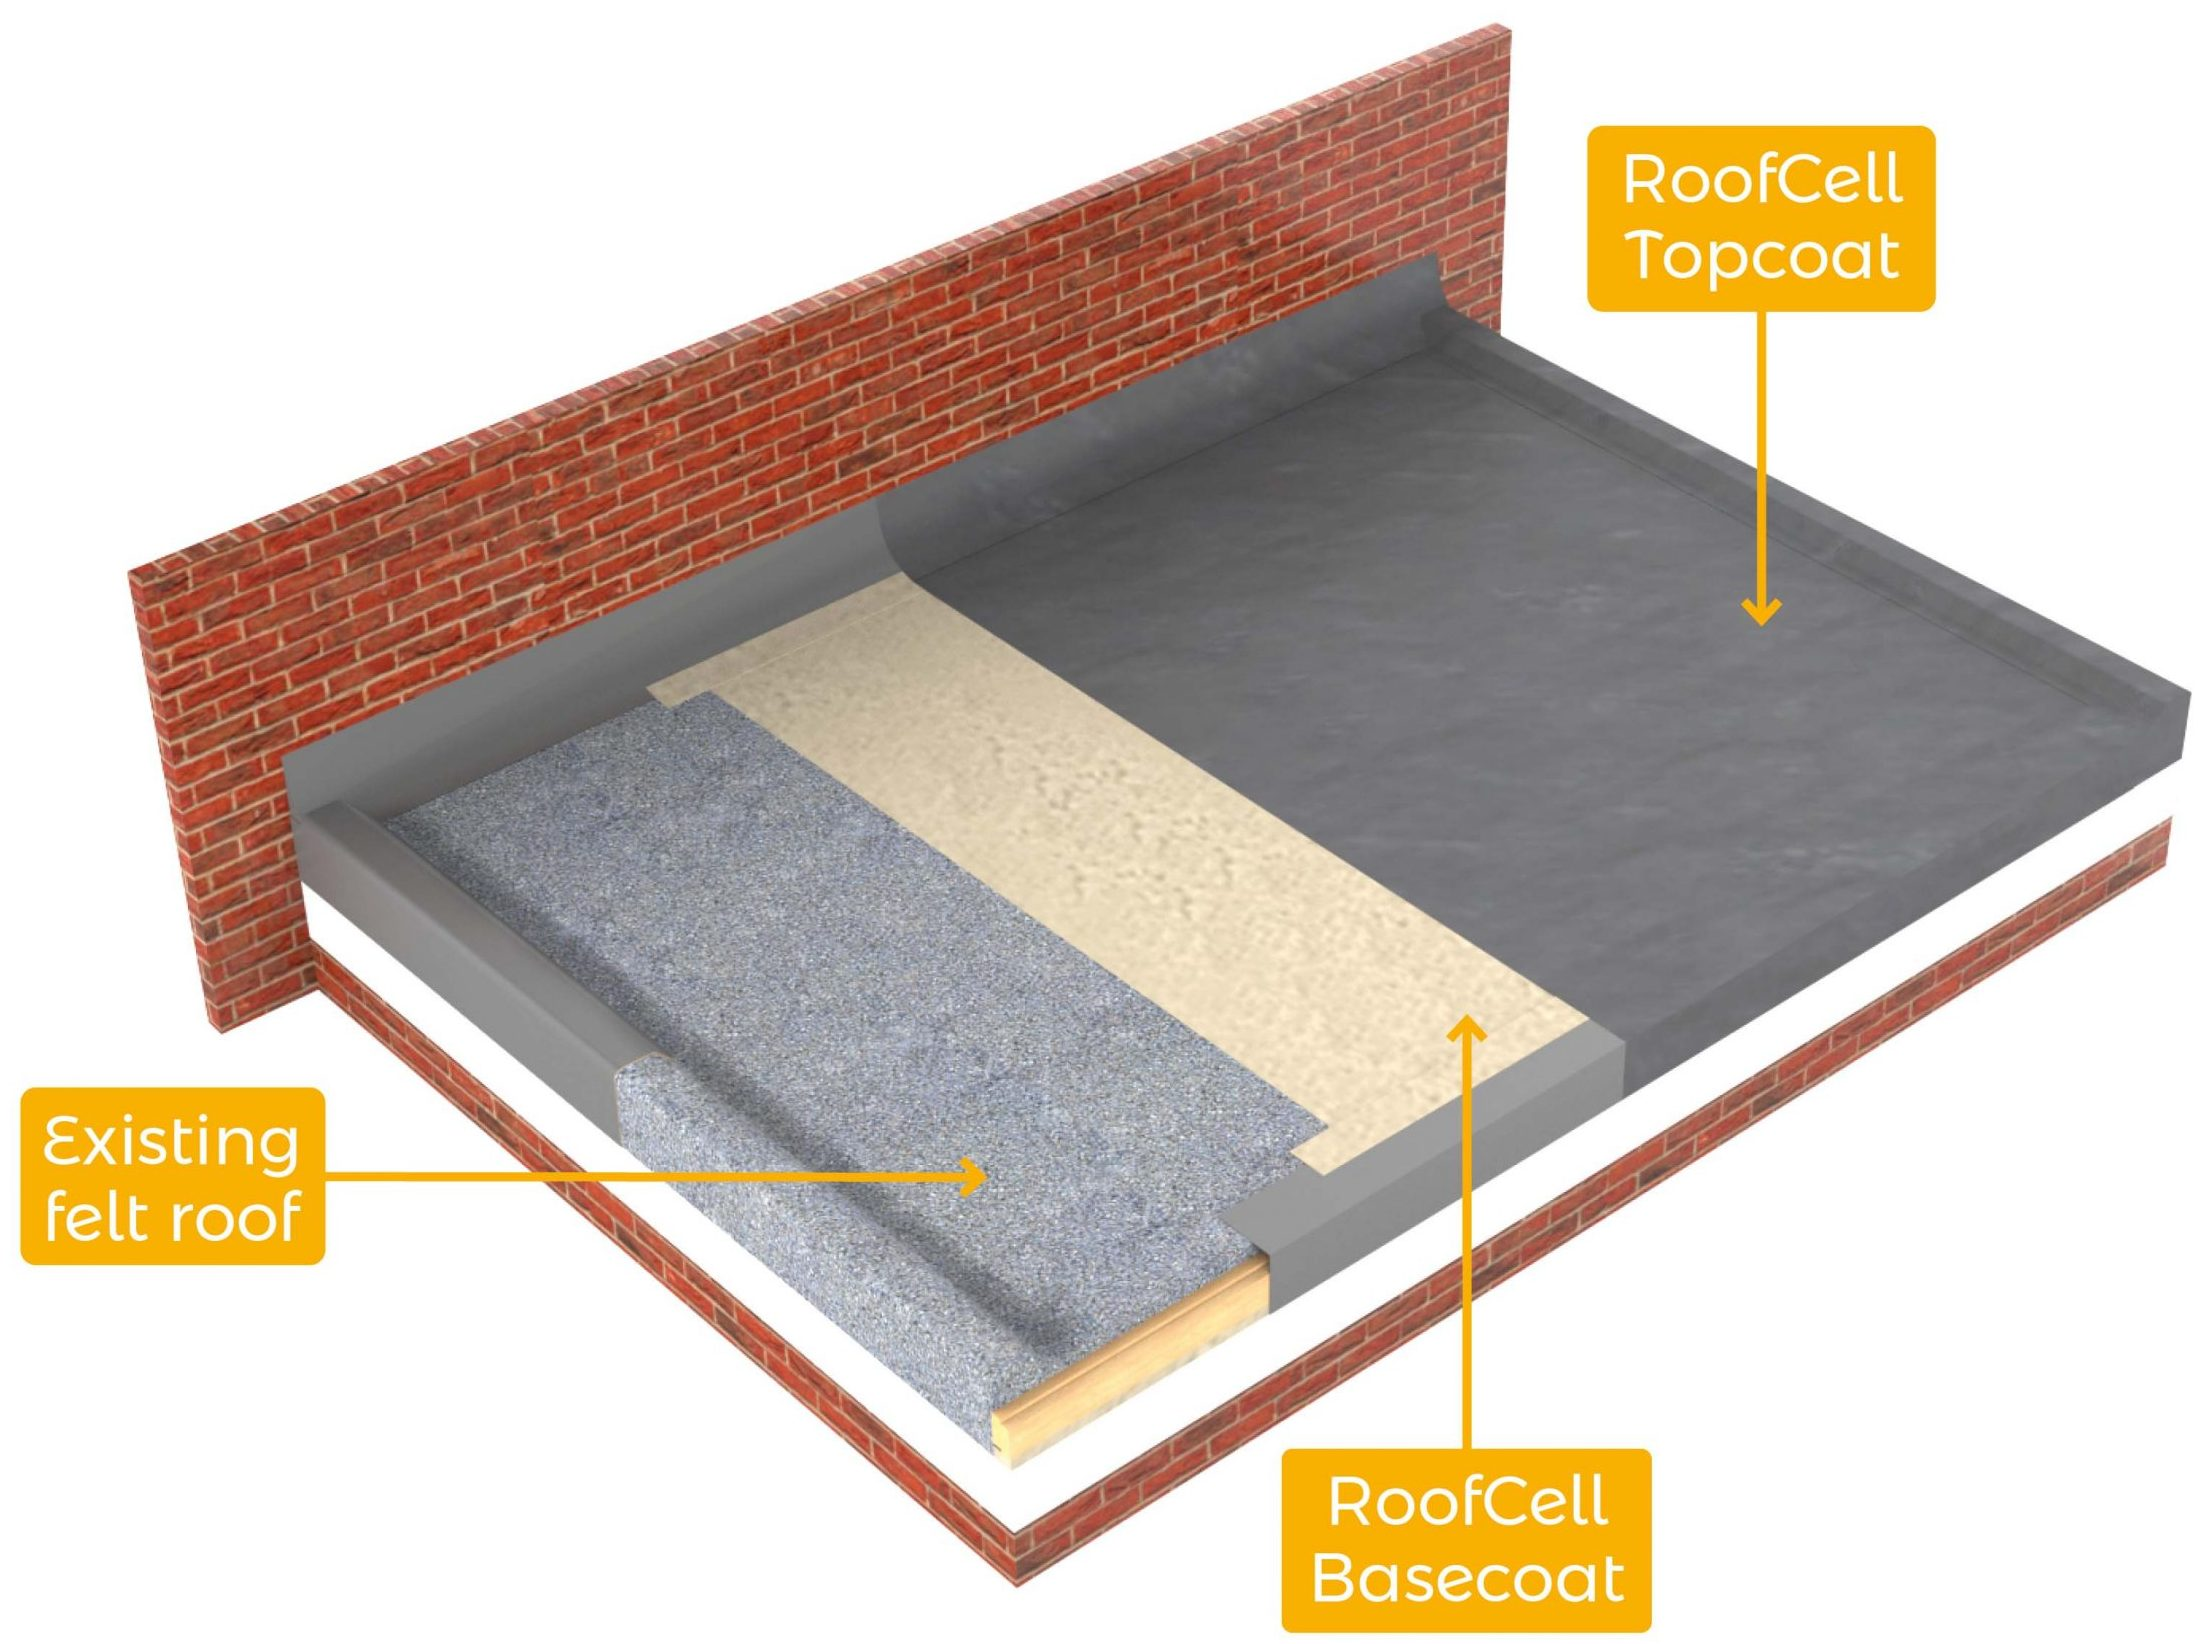 RoofCell Direct-lay GRP Roofing System buildup